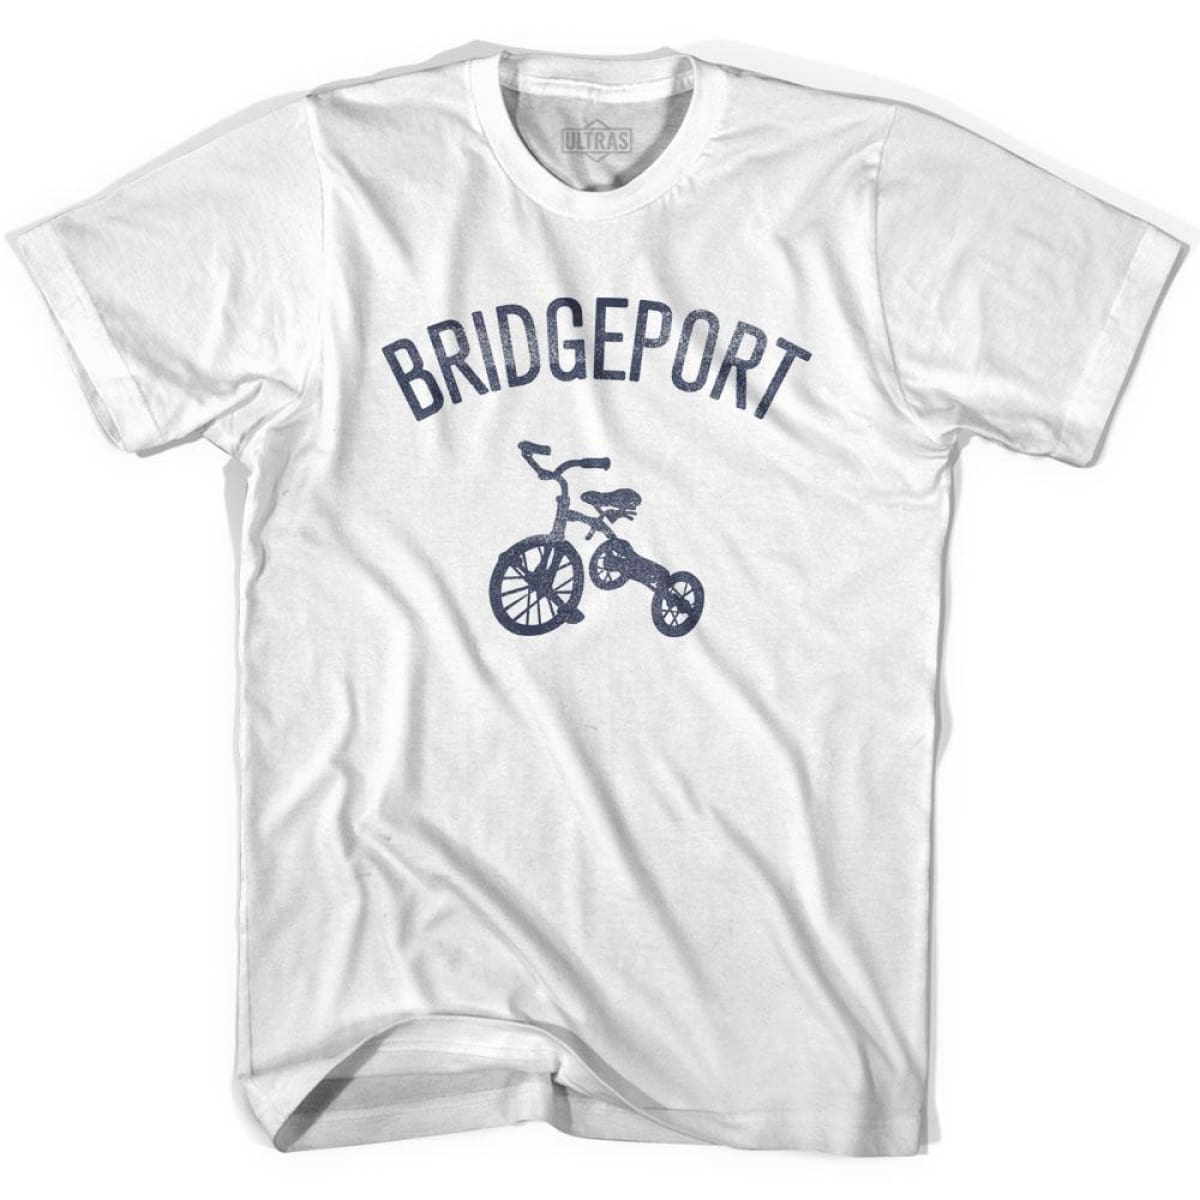 Bridgeport City Tricycle Womens Cotton T-shirt - Tricycle City